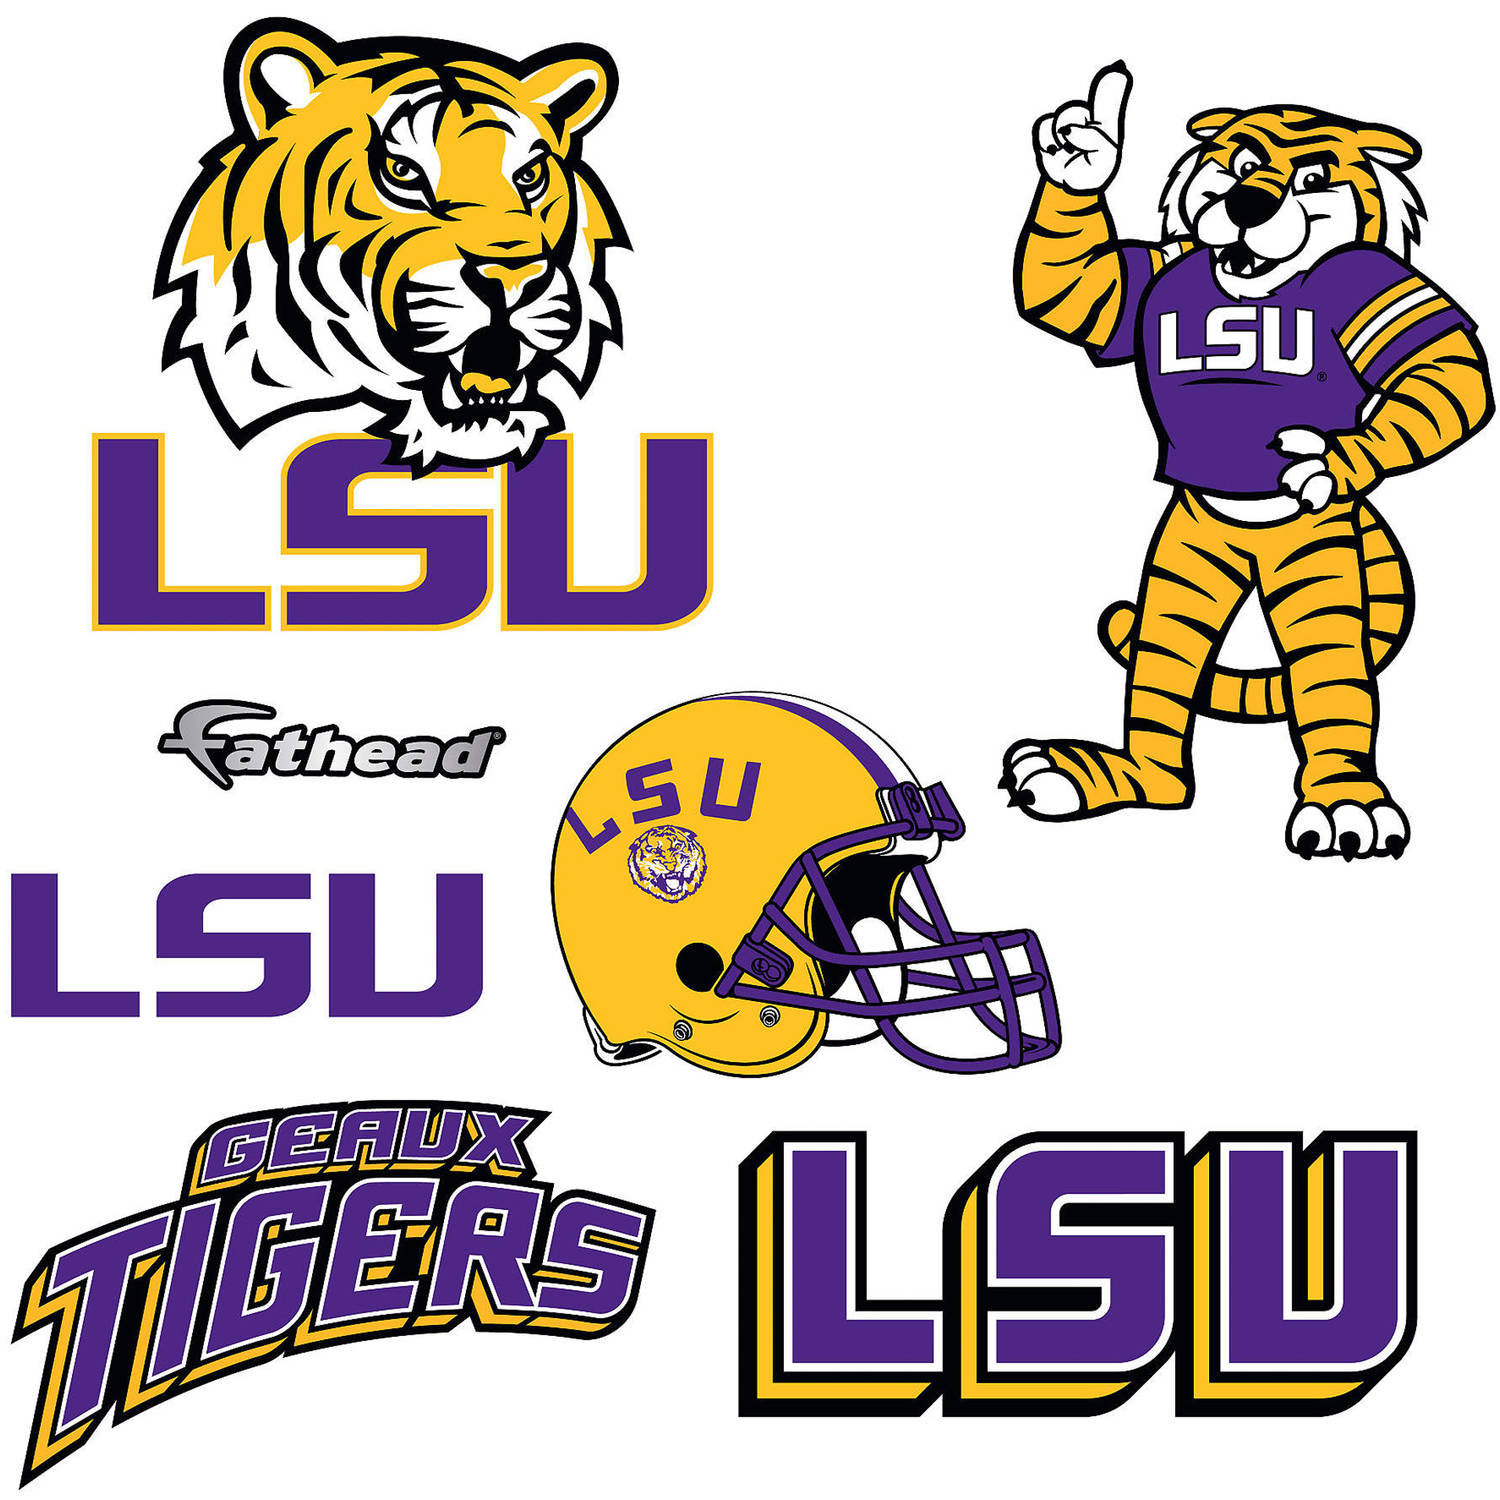 Fathead Louisiana State University Teammate Logo Assortment